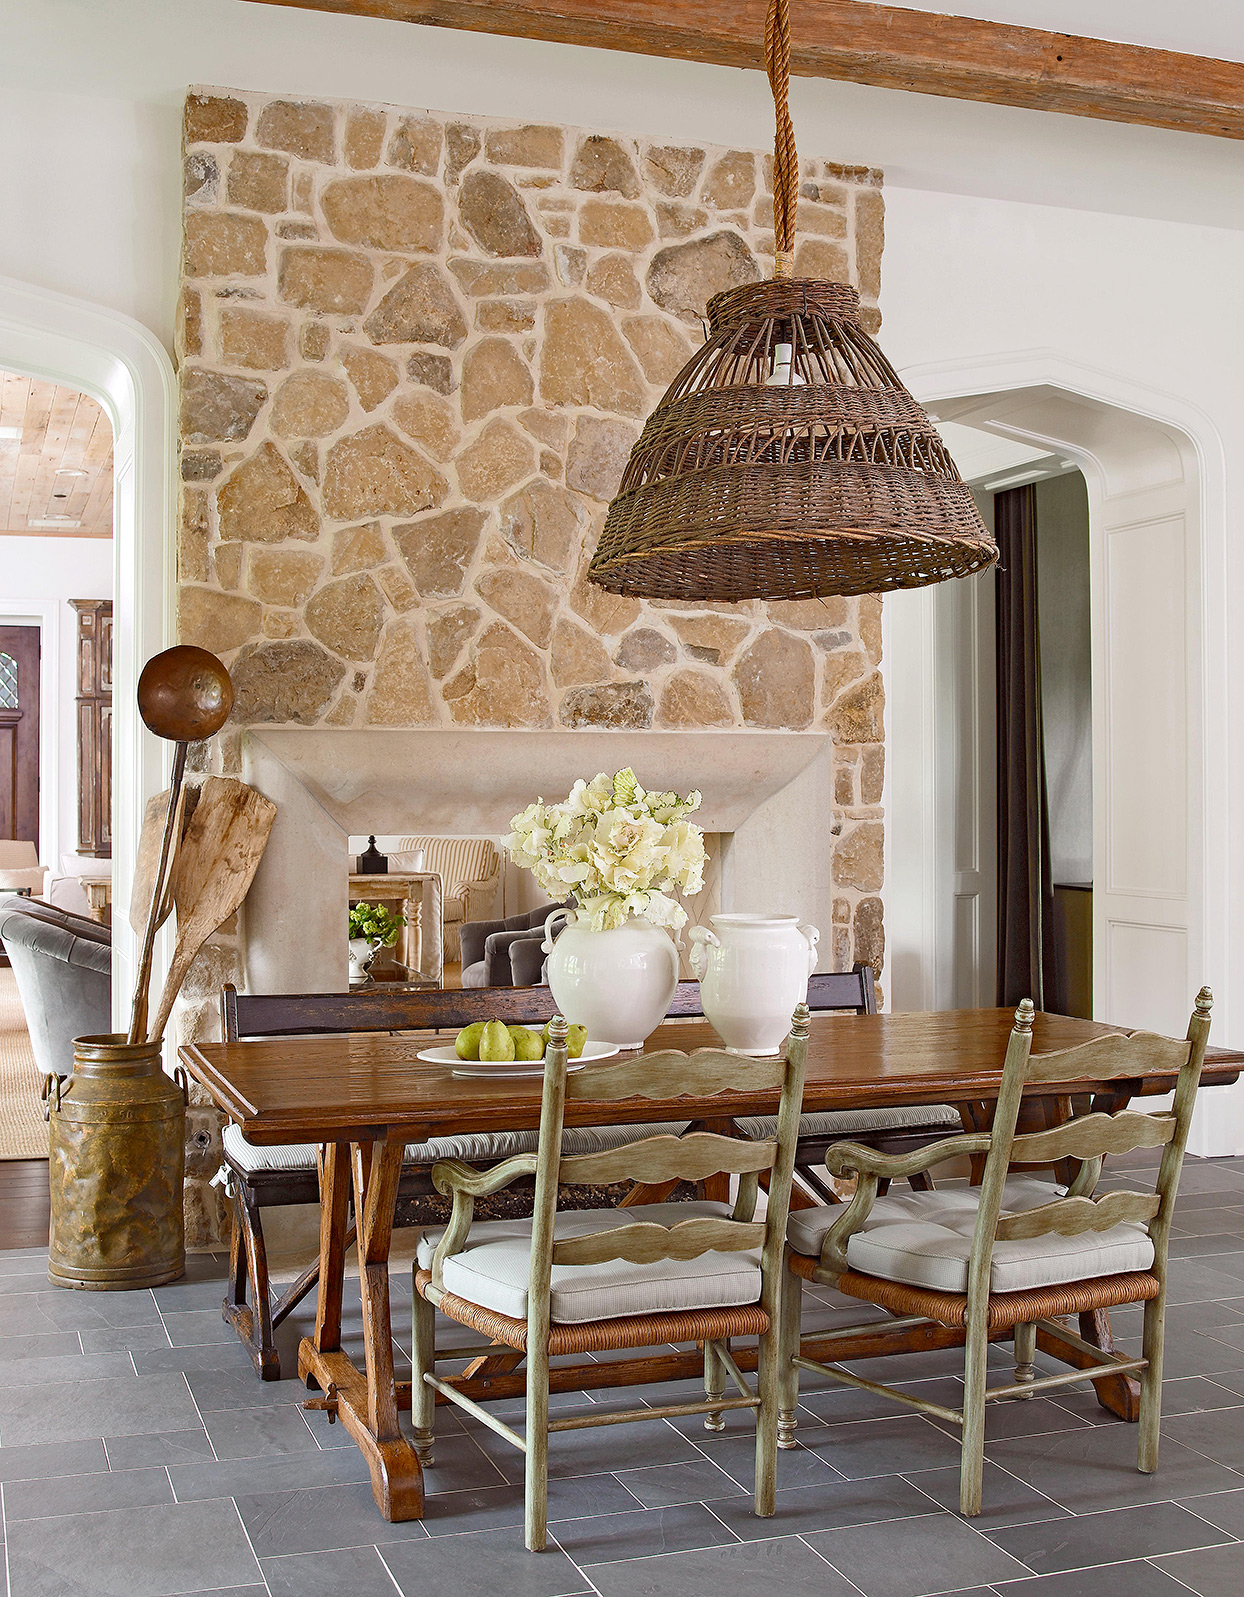 stone fireplace country french dining area rustic pendant lamp